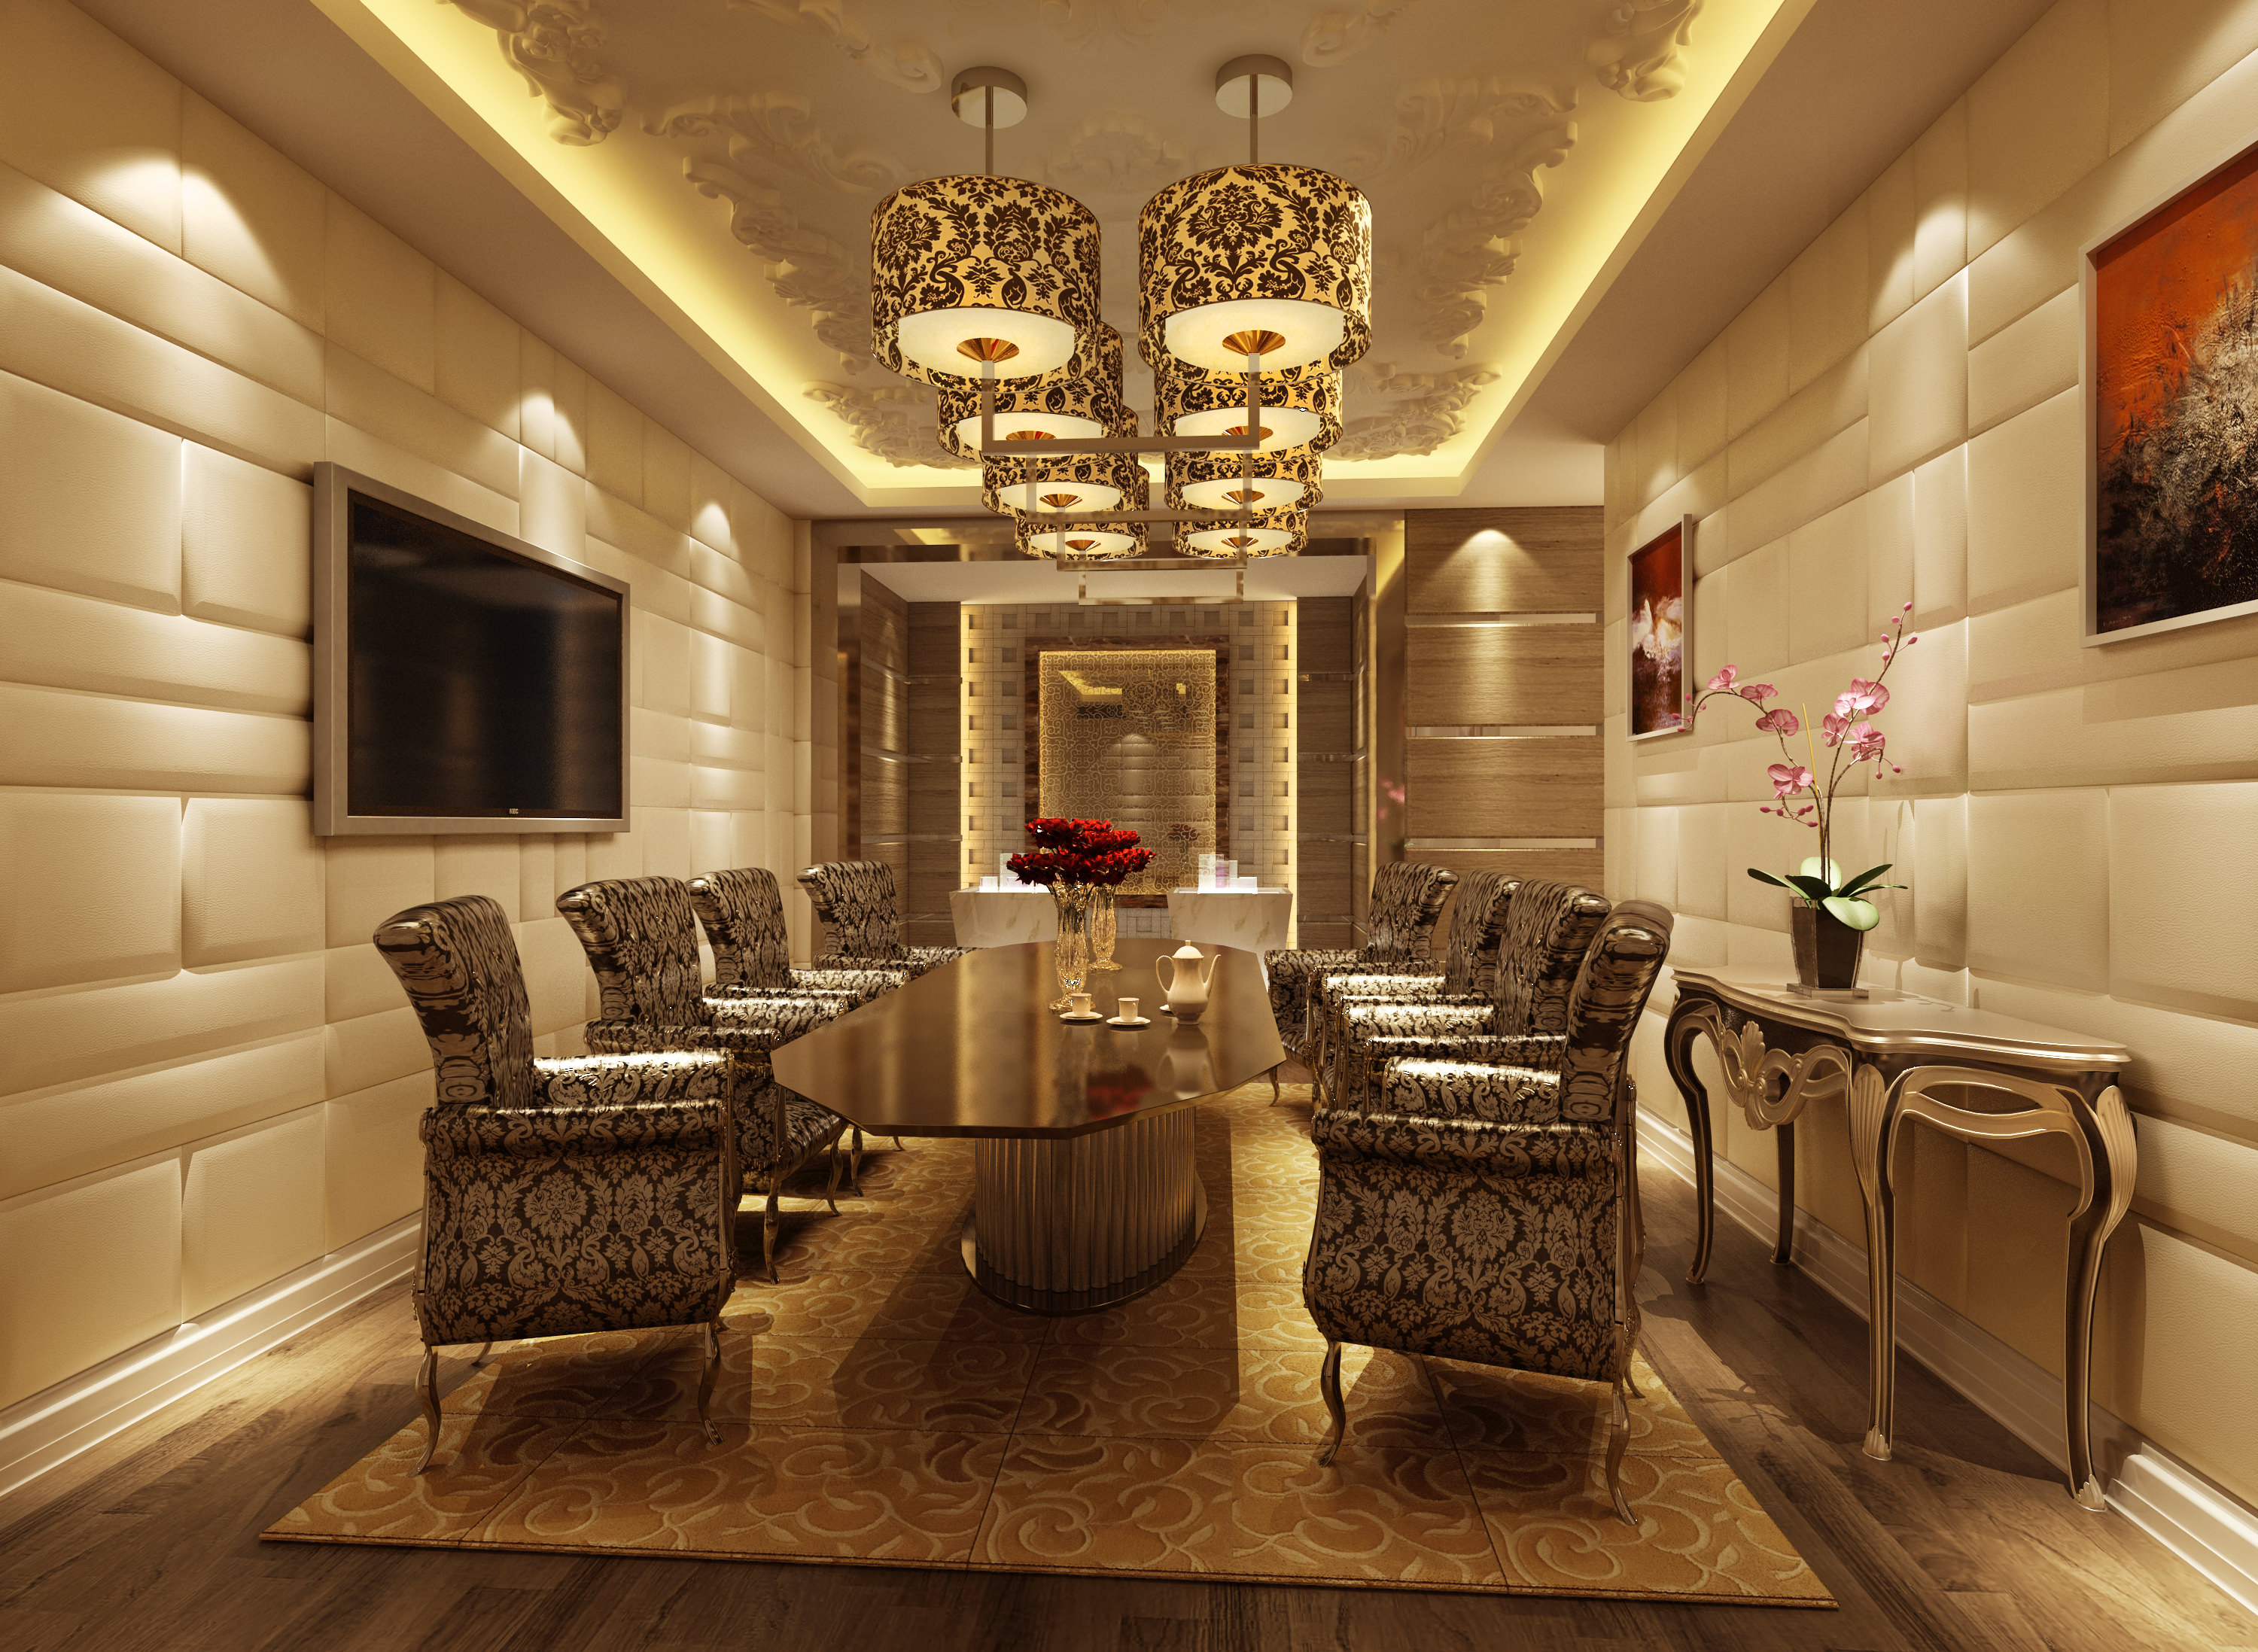 Luxury conference room 3d model max for Luxury home models